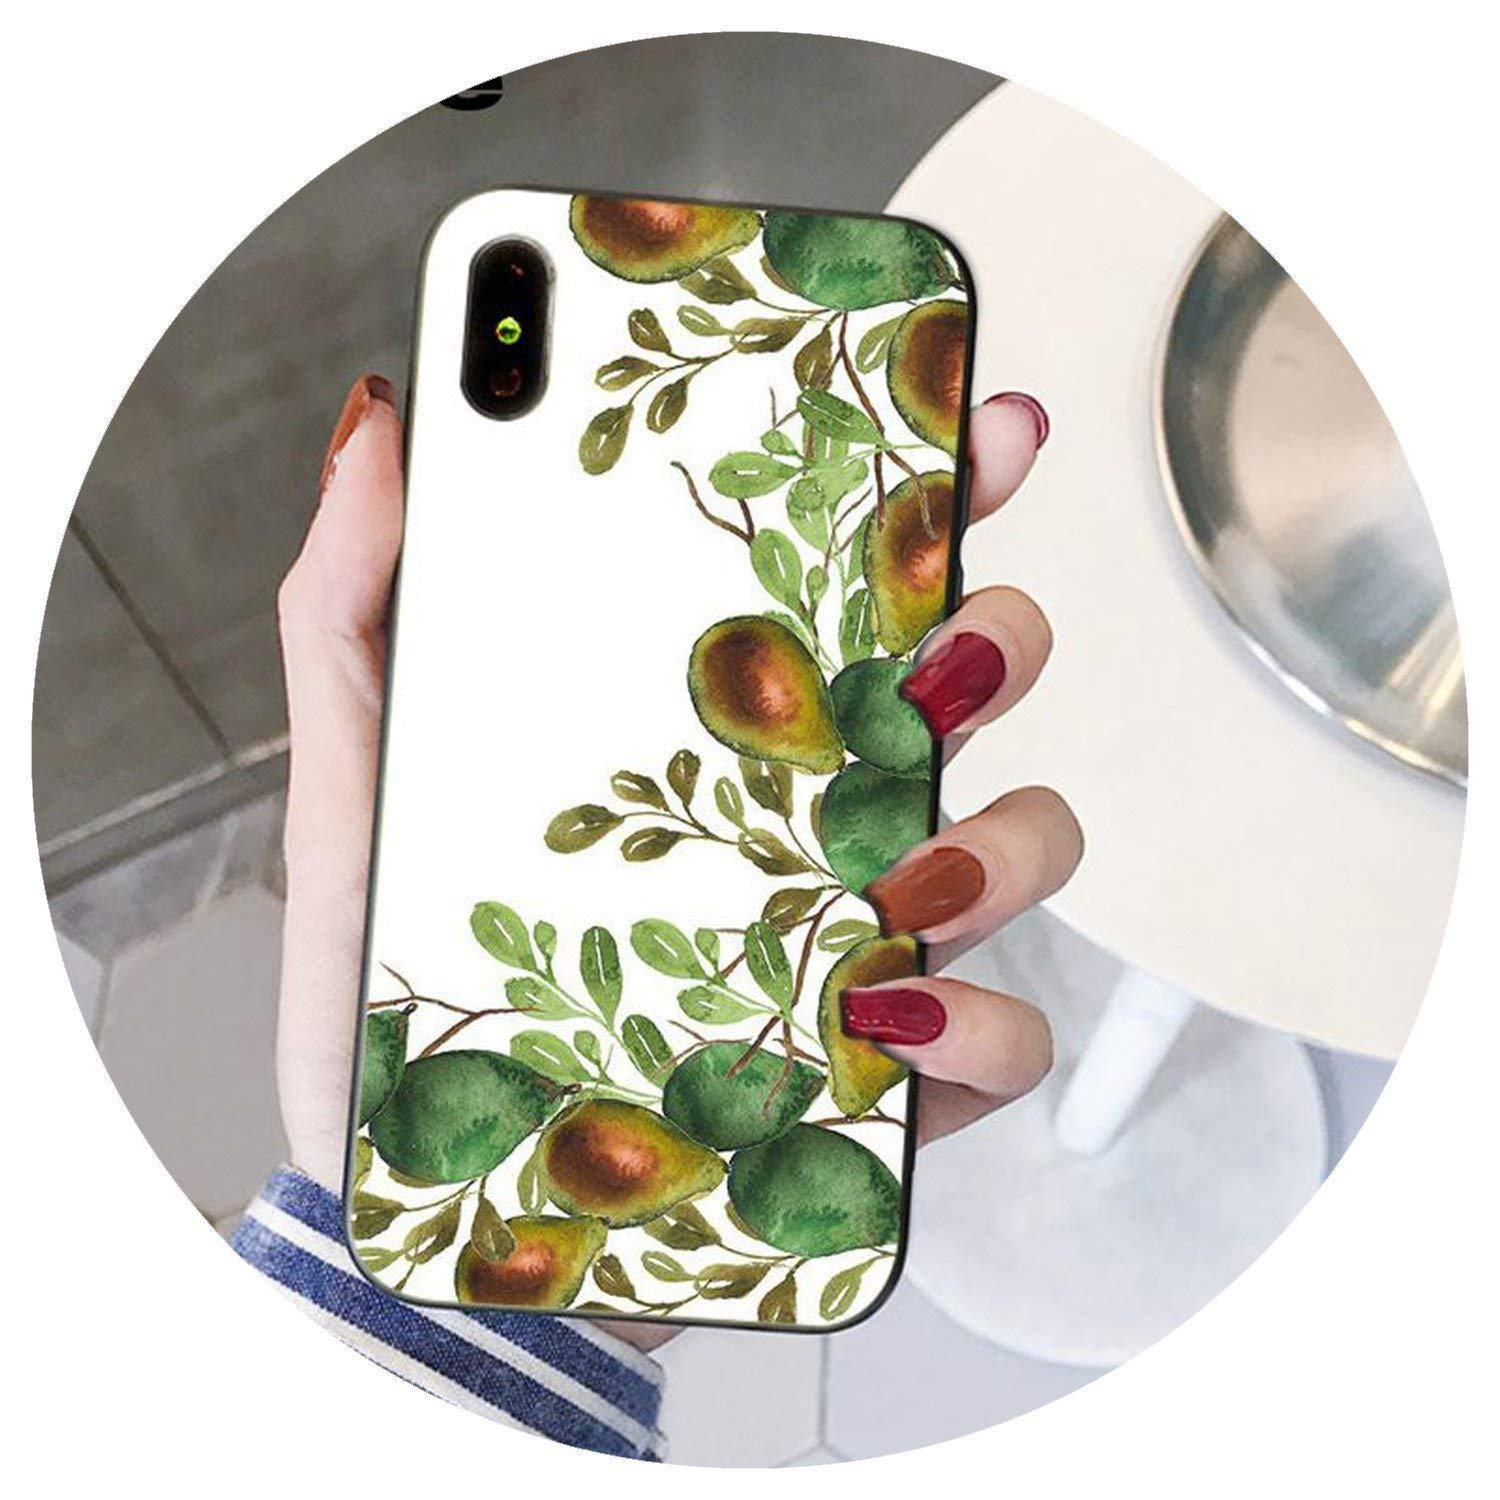 Avocado Prints Gold Tropical TPU Soft Silicone Phone Cover for iPhone 8 7 6 6S Plus X XS MAX 5 5S SE XR Cover,A2,for iPhone 5 5s SE,A16,ForiPhone66s